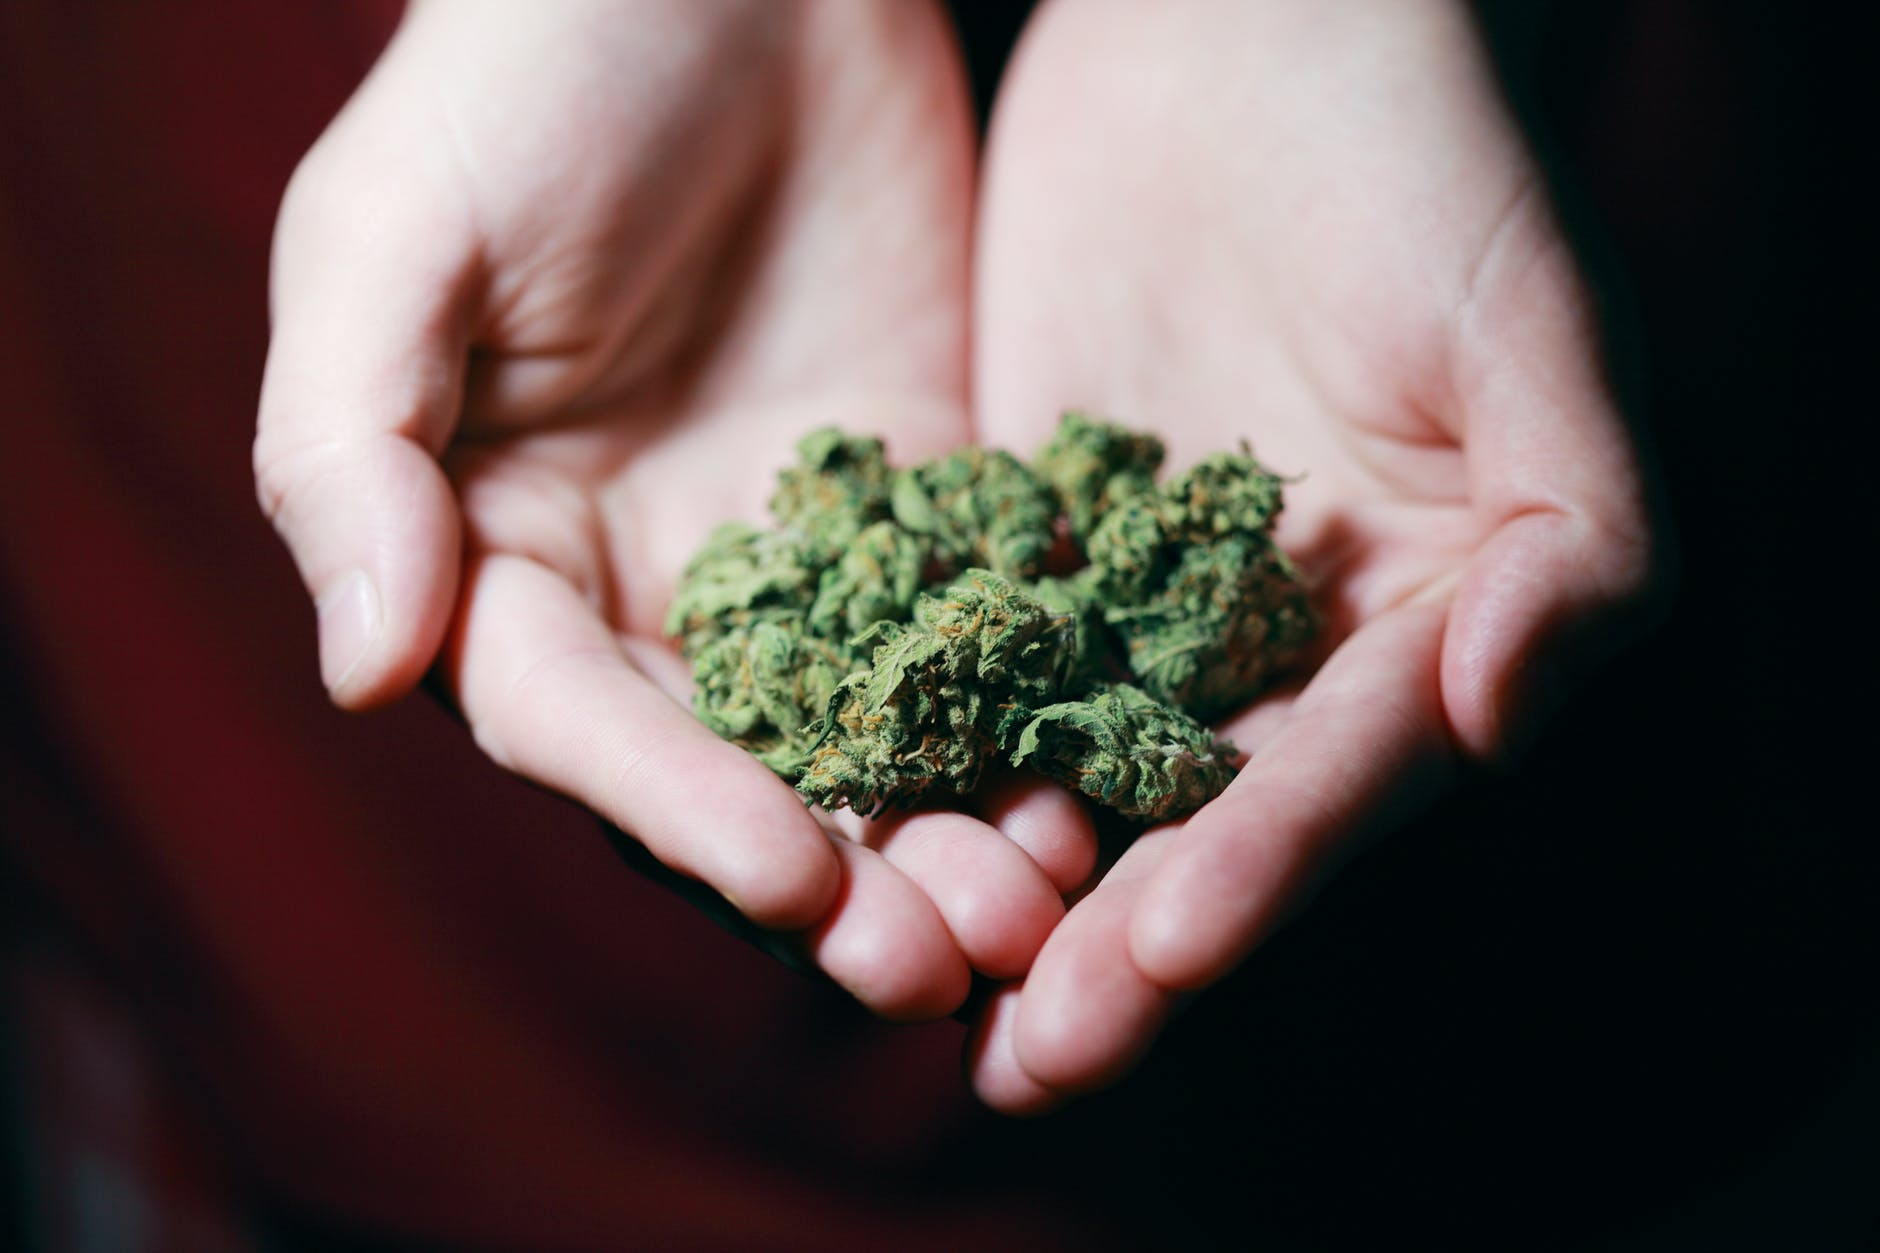 healthiest way to consume weed